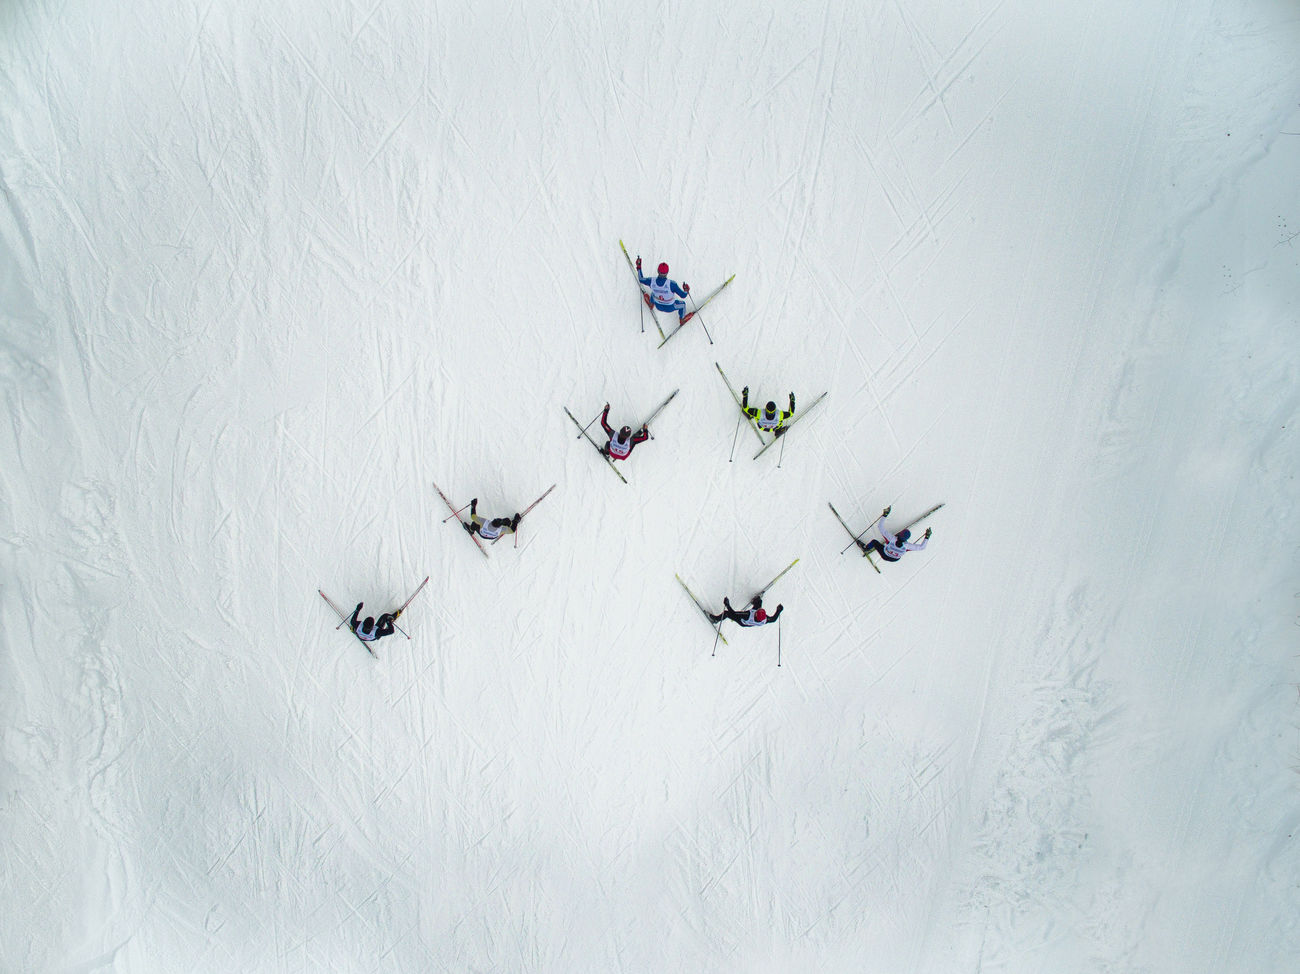 Day Flying Flying High Large Group Of People Outdoors People Race Ski Skiing Snow Sport Winter